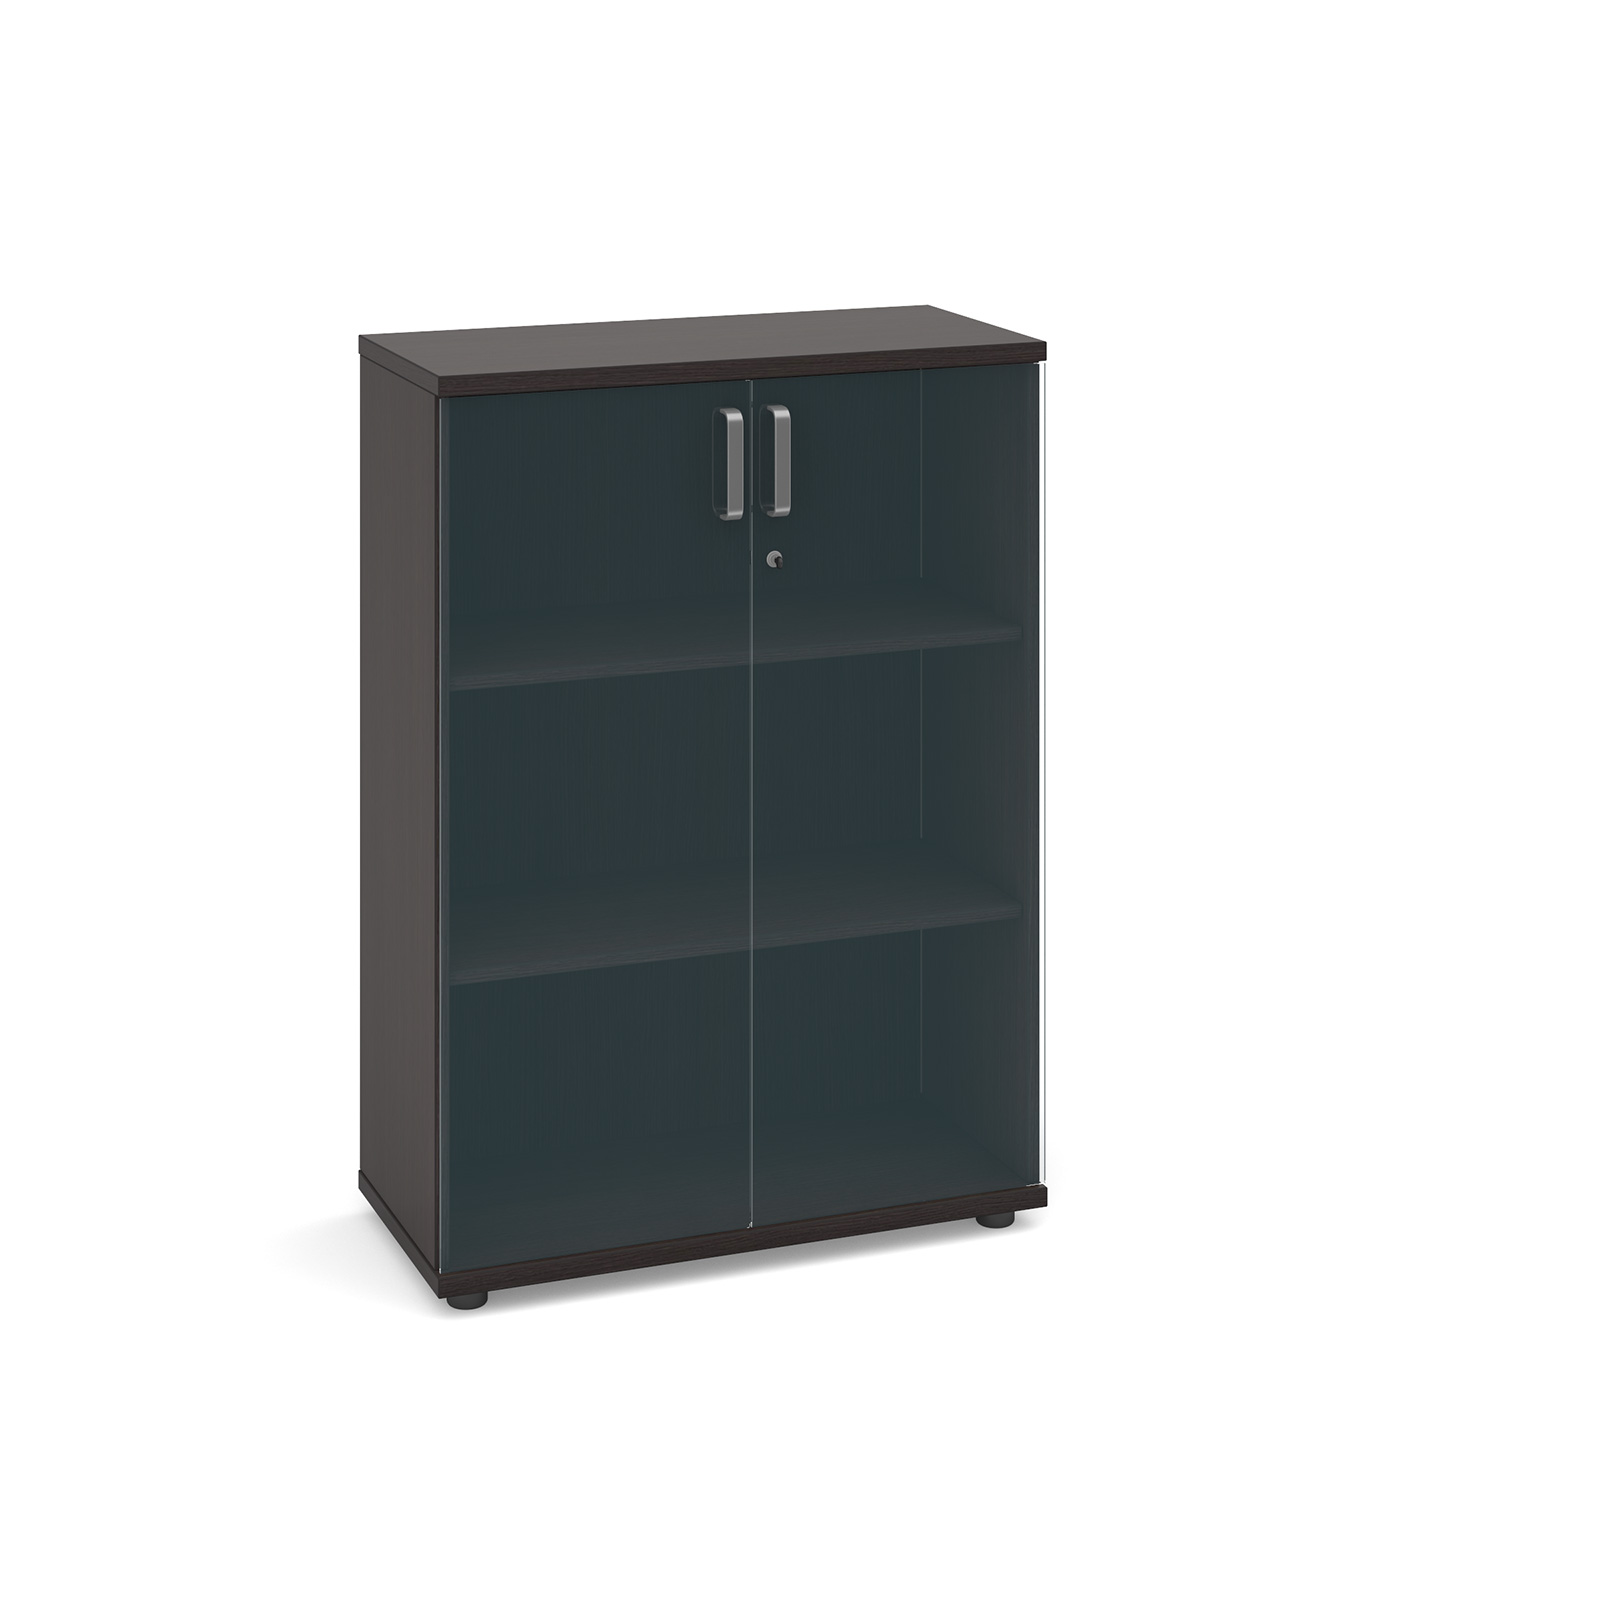 Dams Magnum Executive Low Cupboard with Glass Door